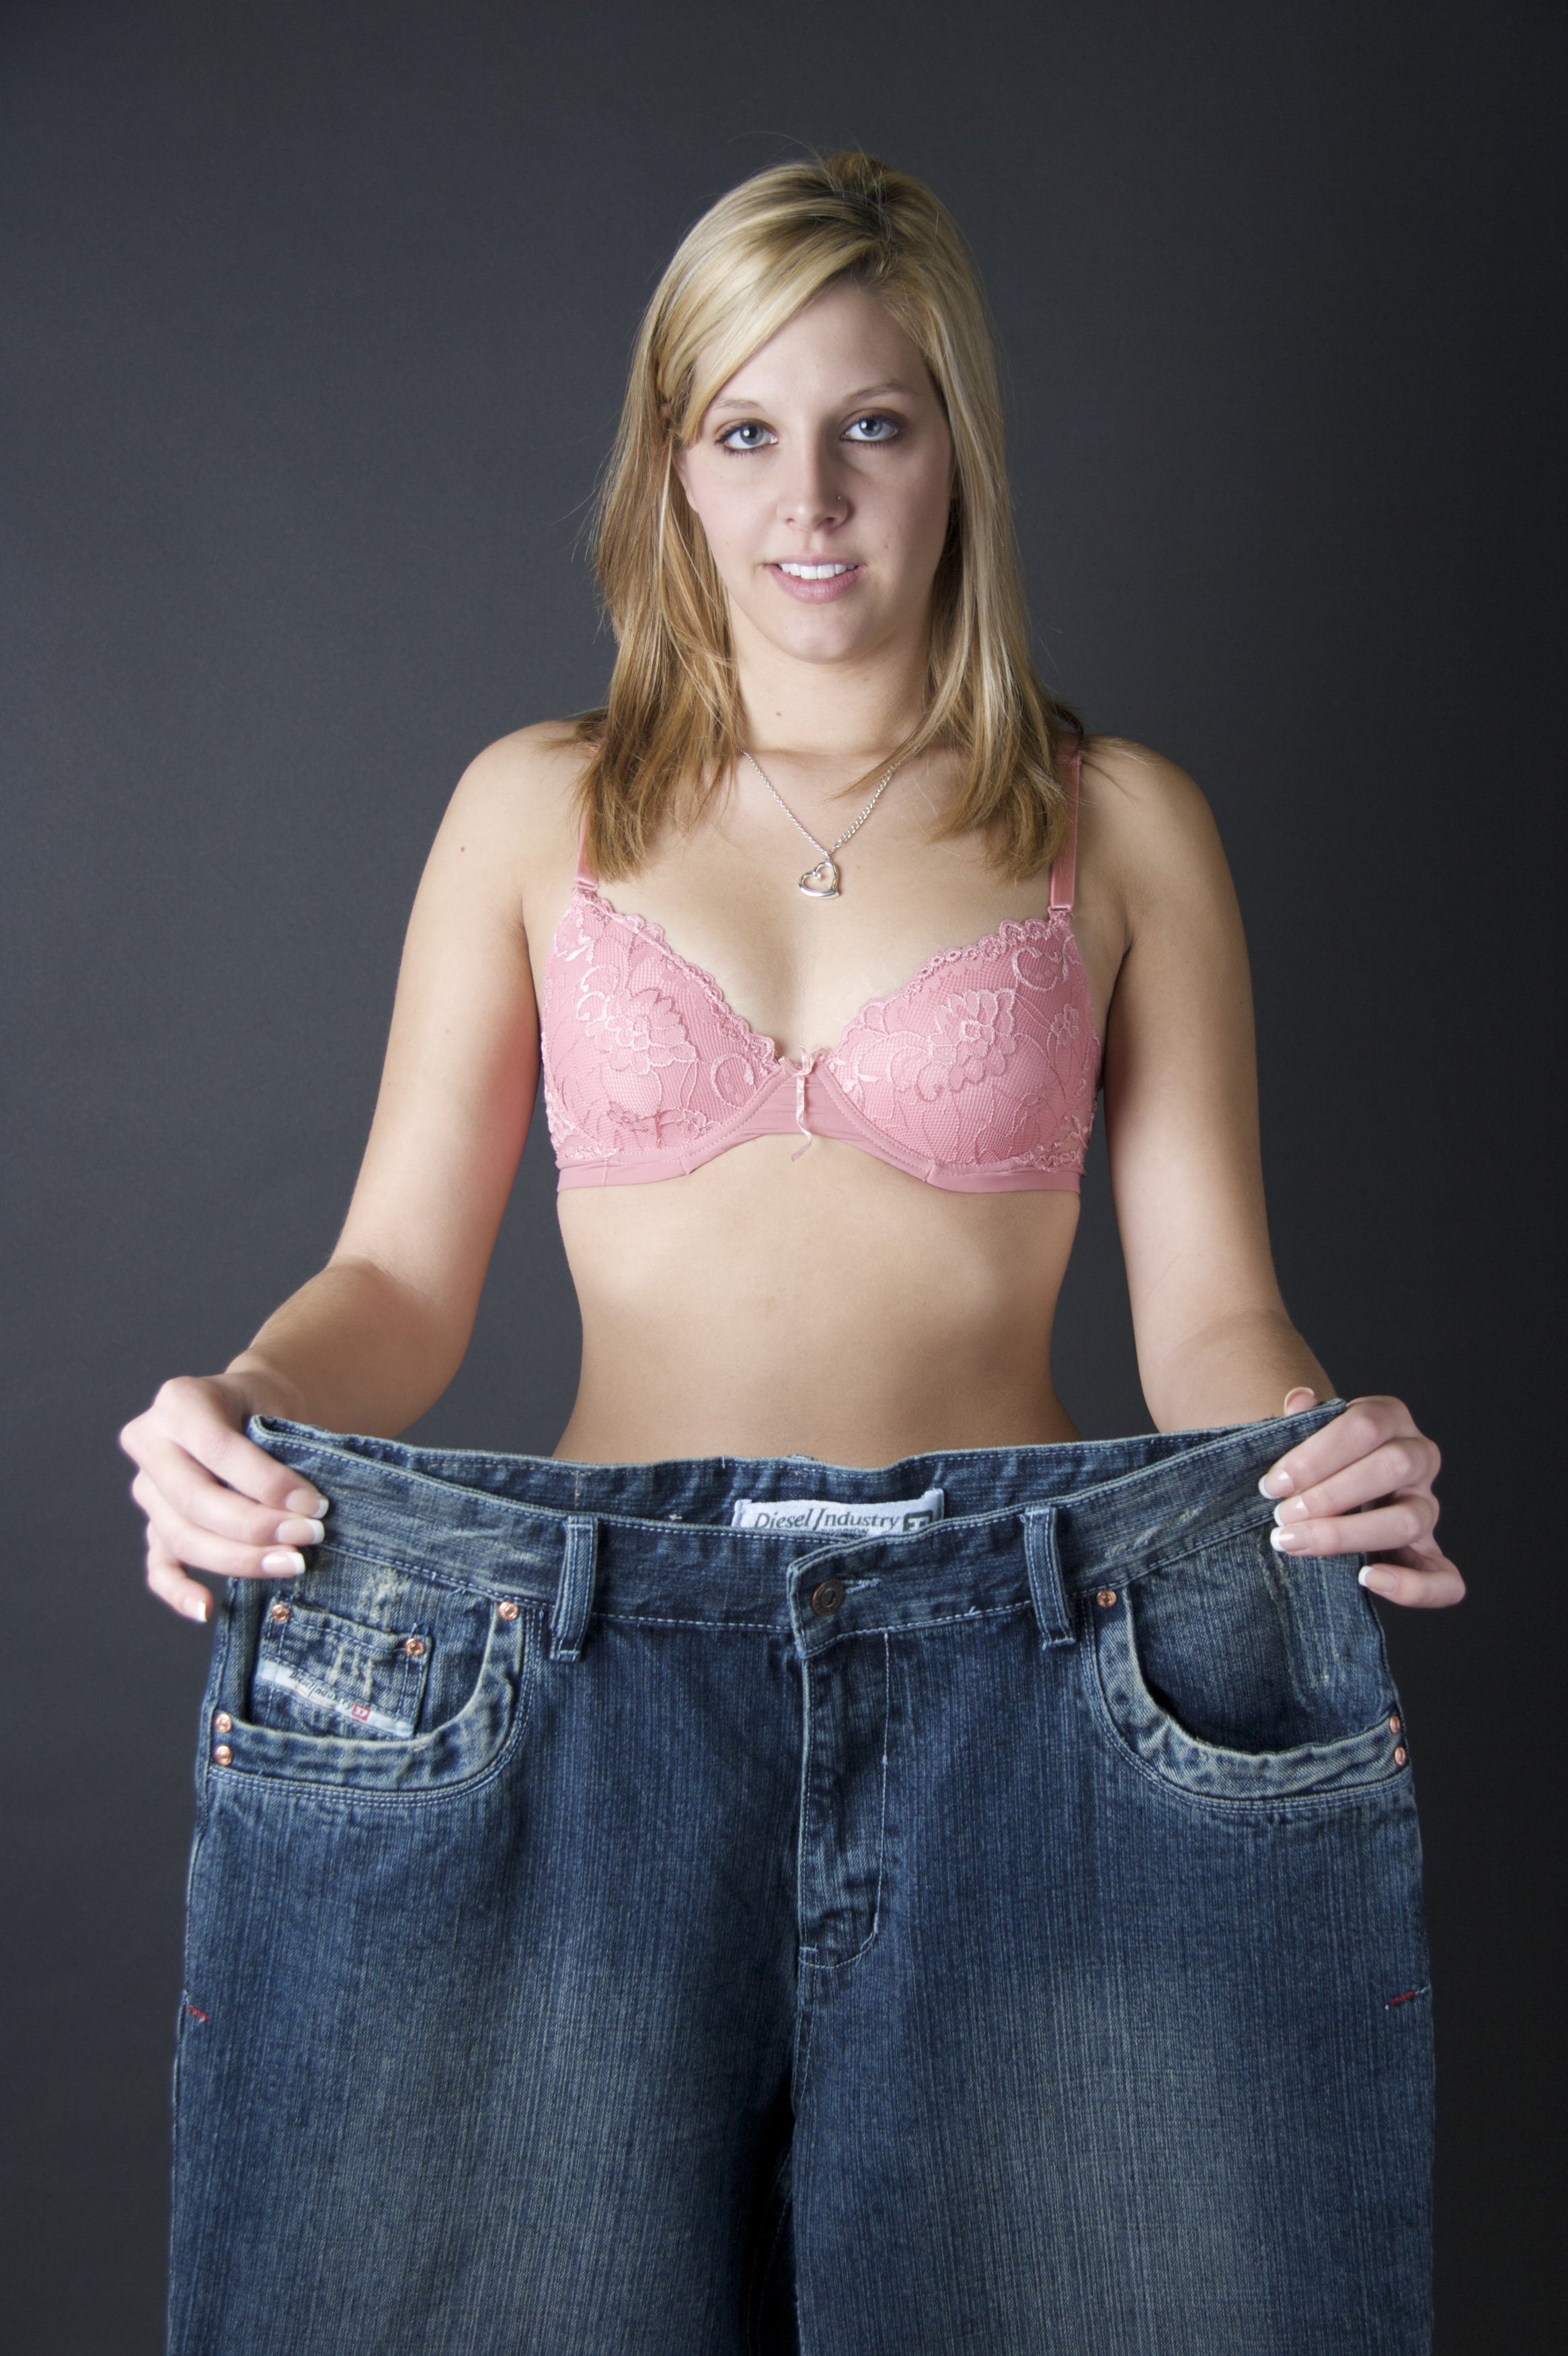 Things To Consider When Choosing A Weight Loss Method